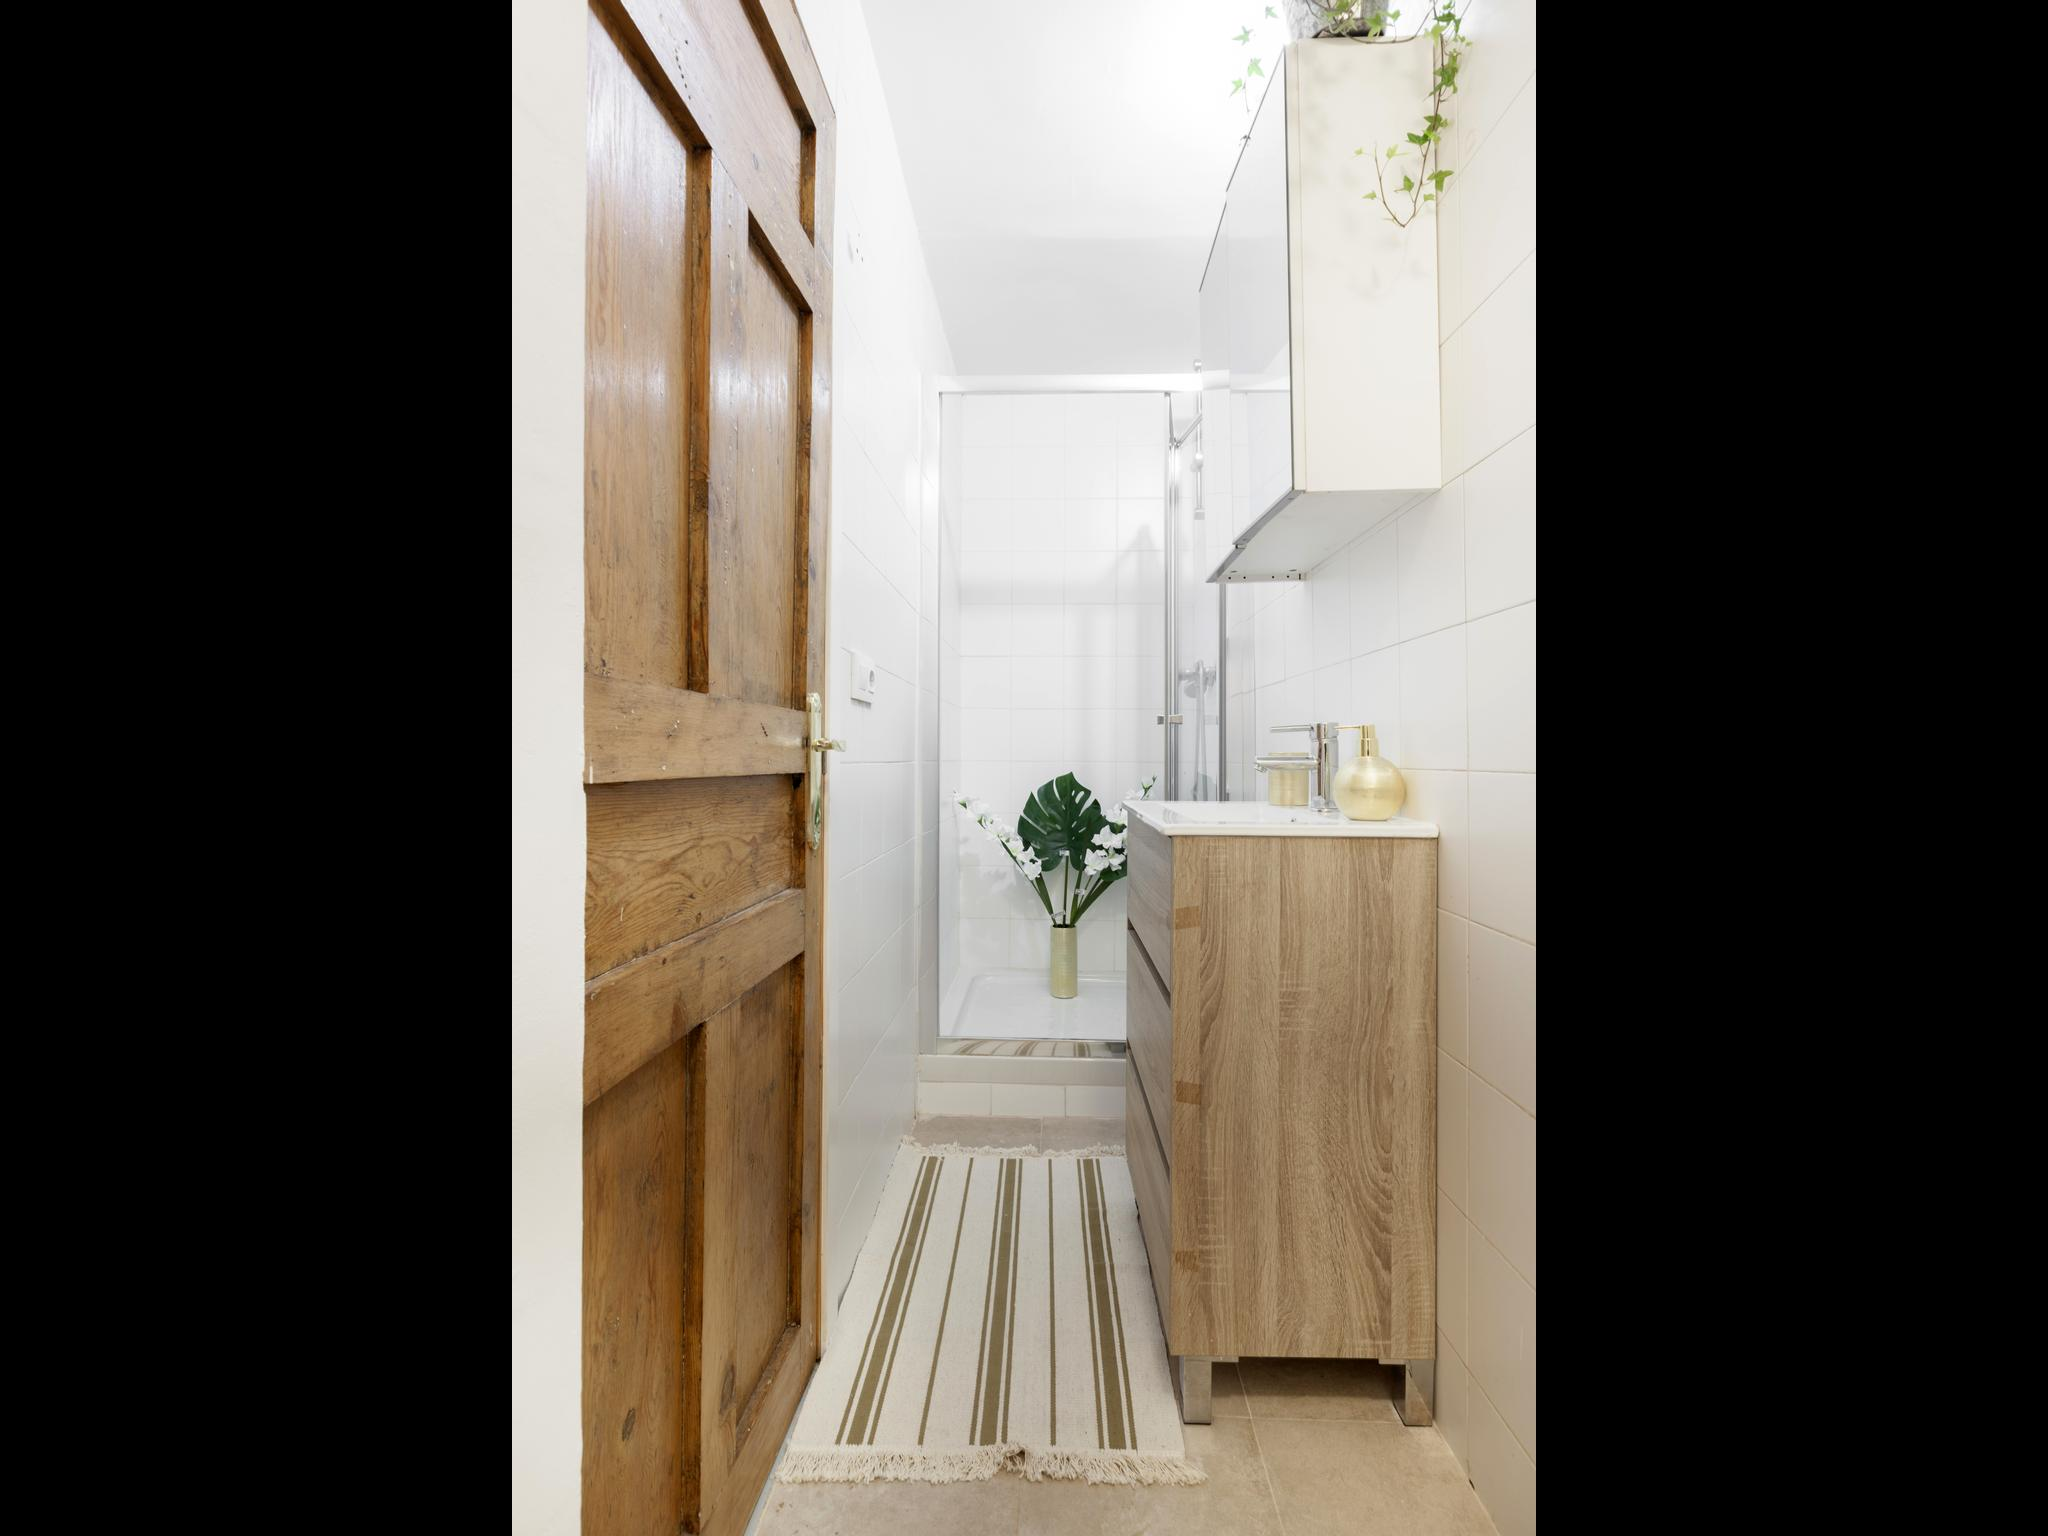 Ave María - Furnished house in Madrid